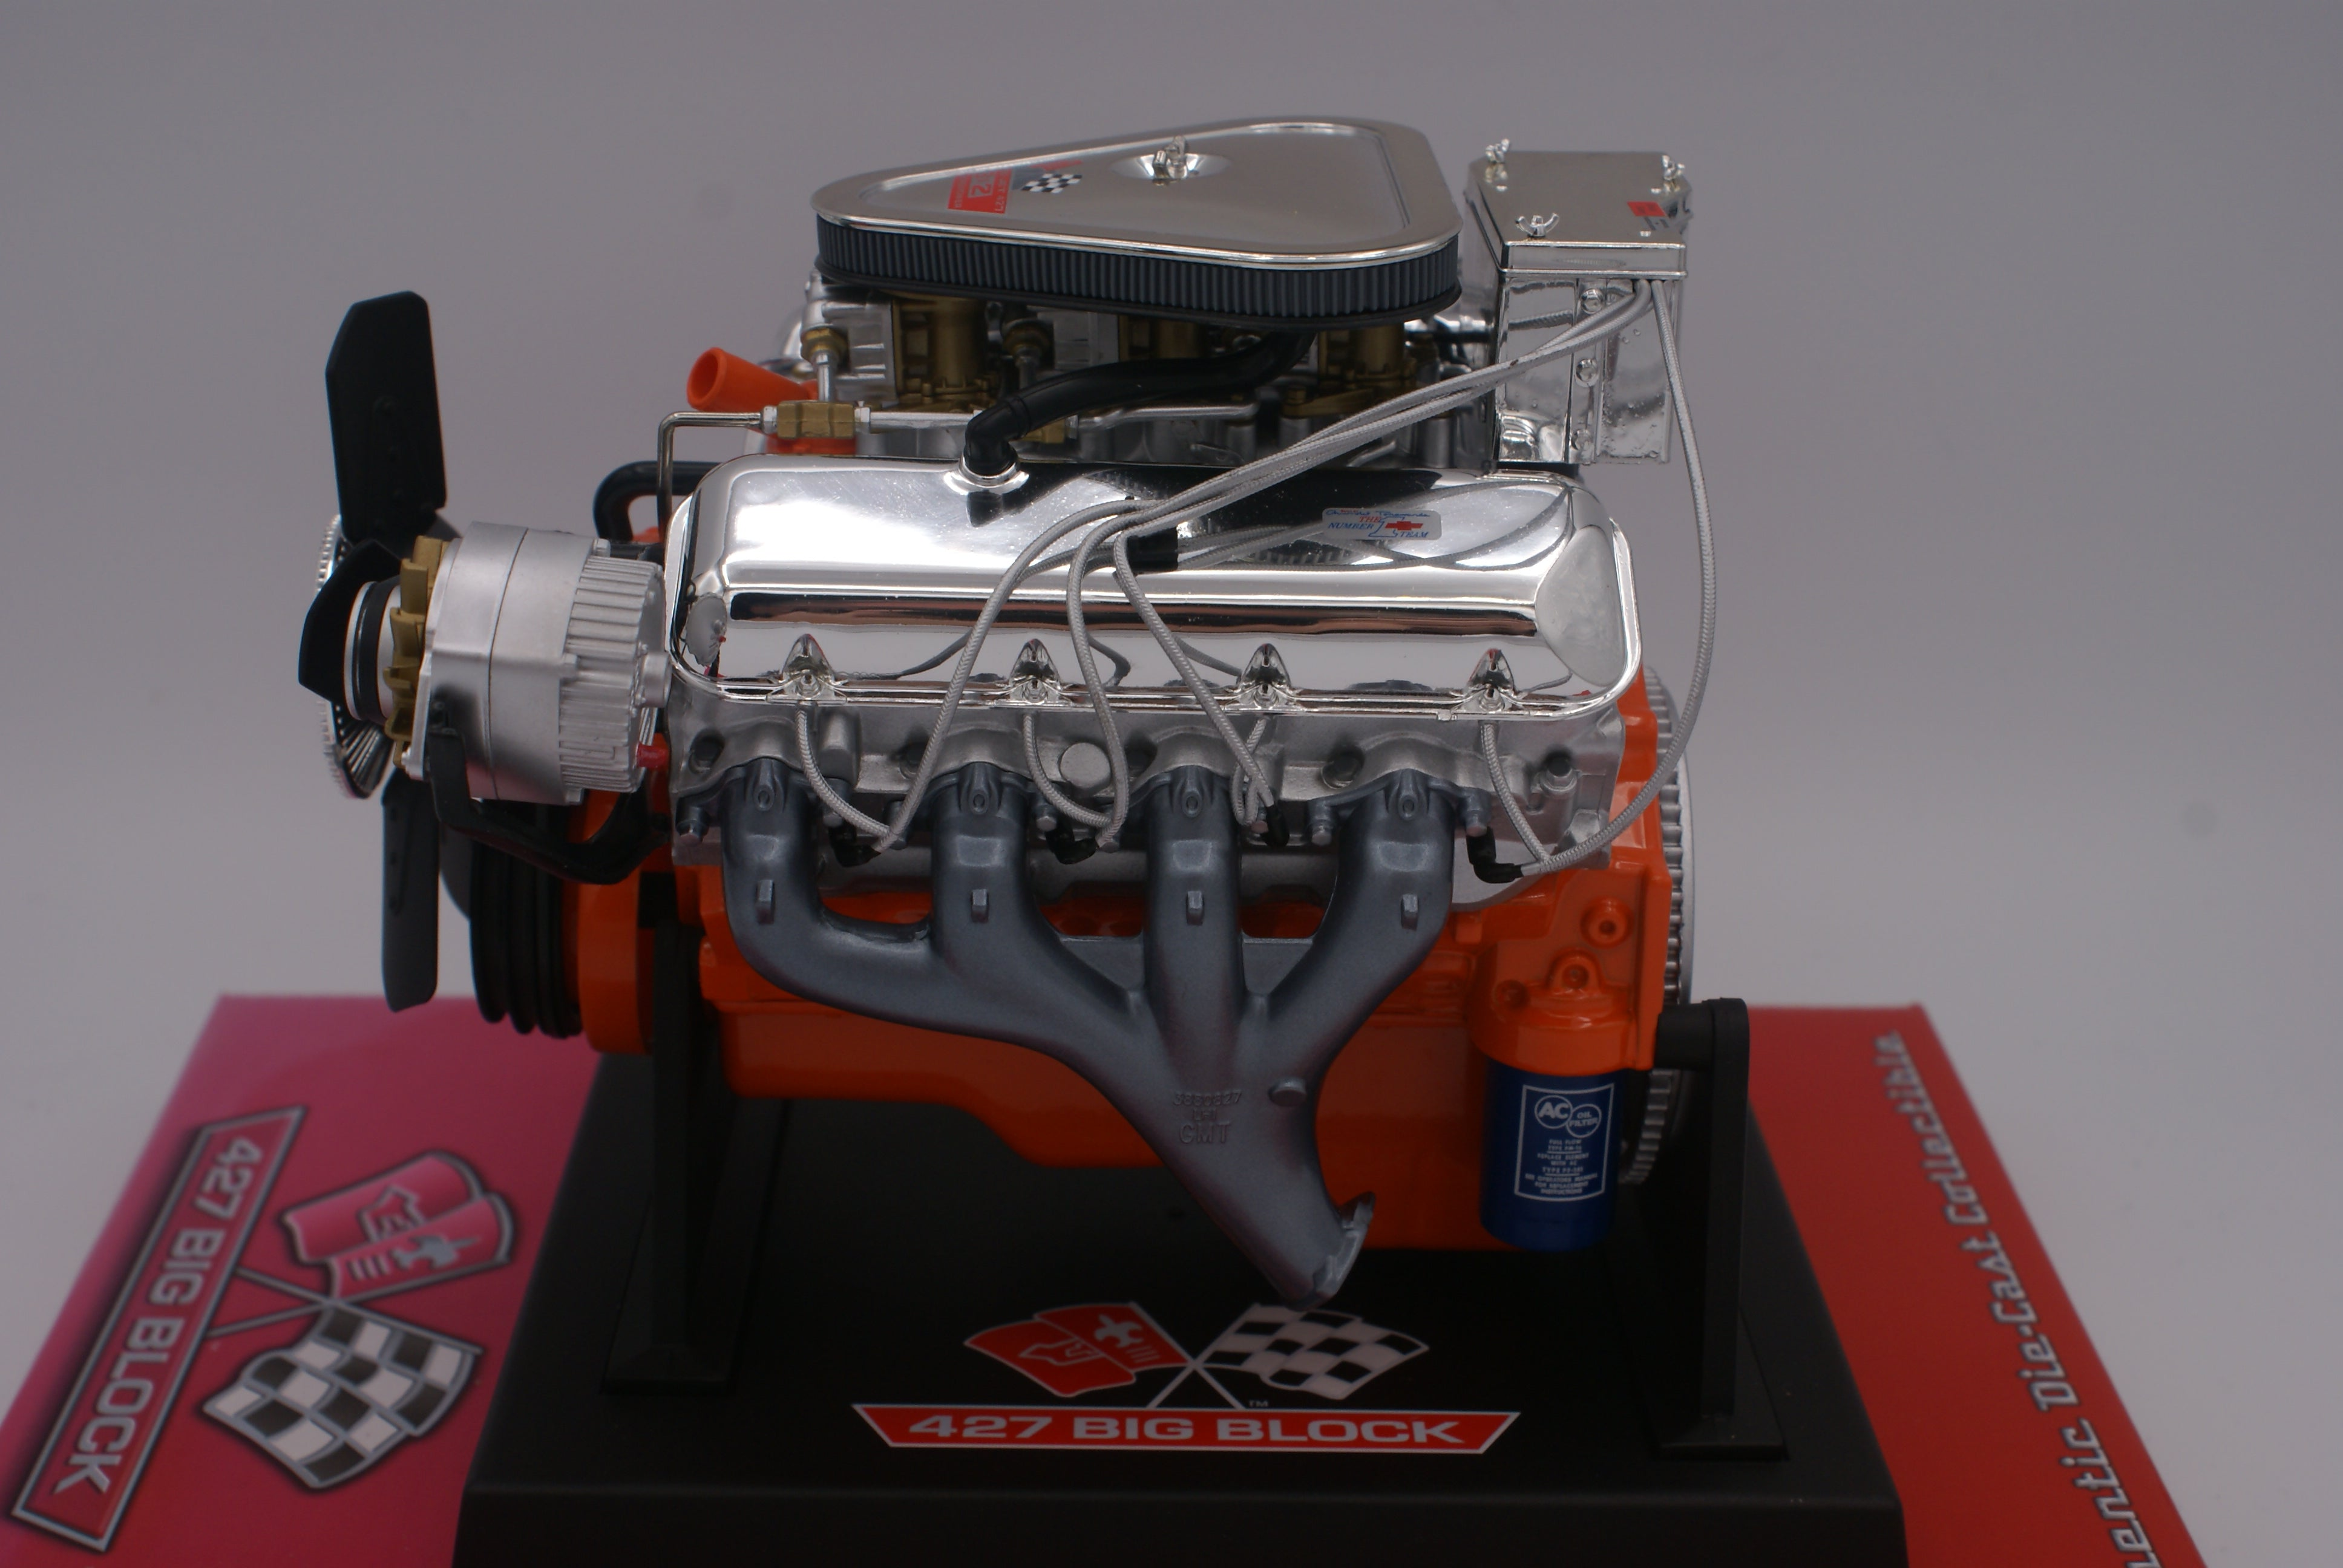 Chevrolet 427 Big Block